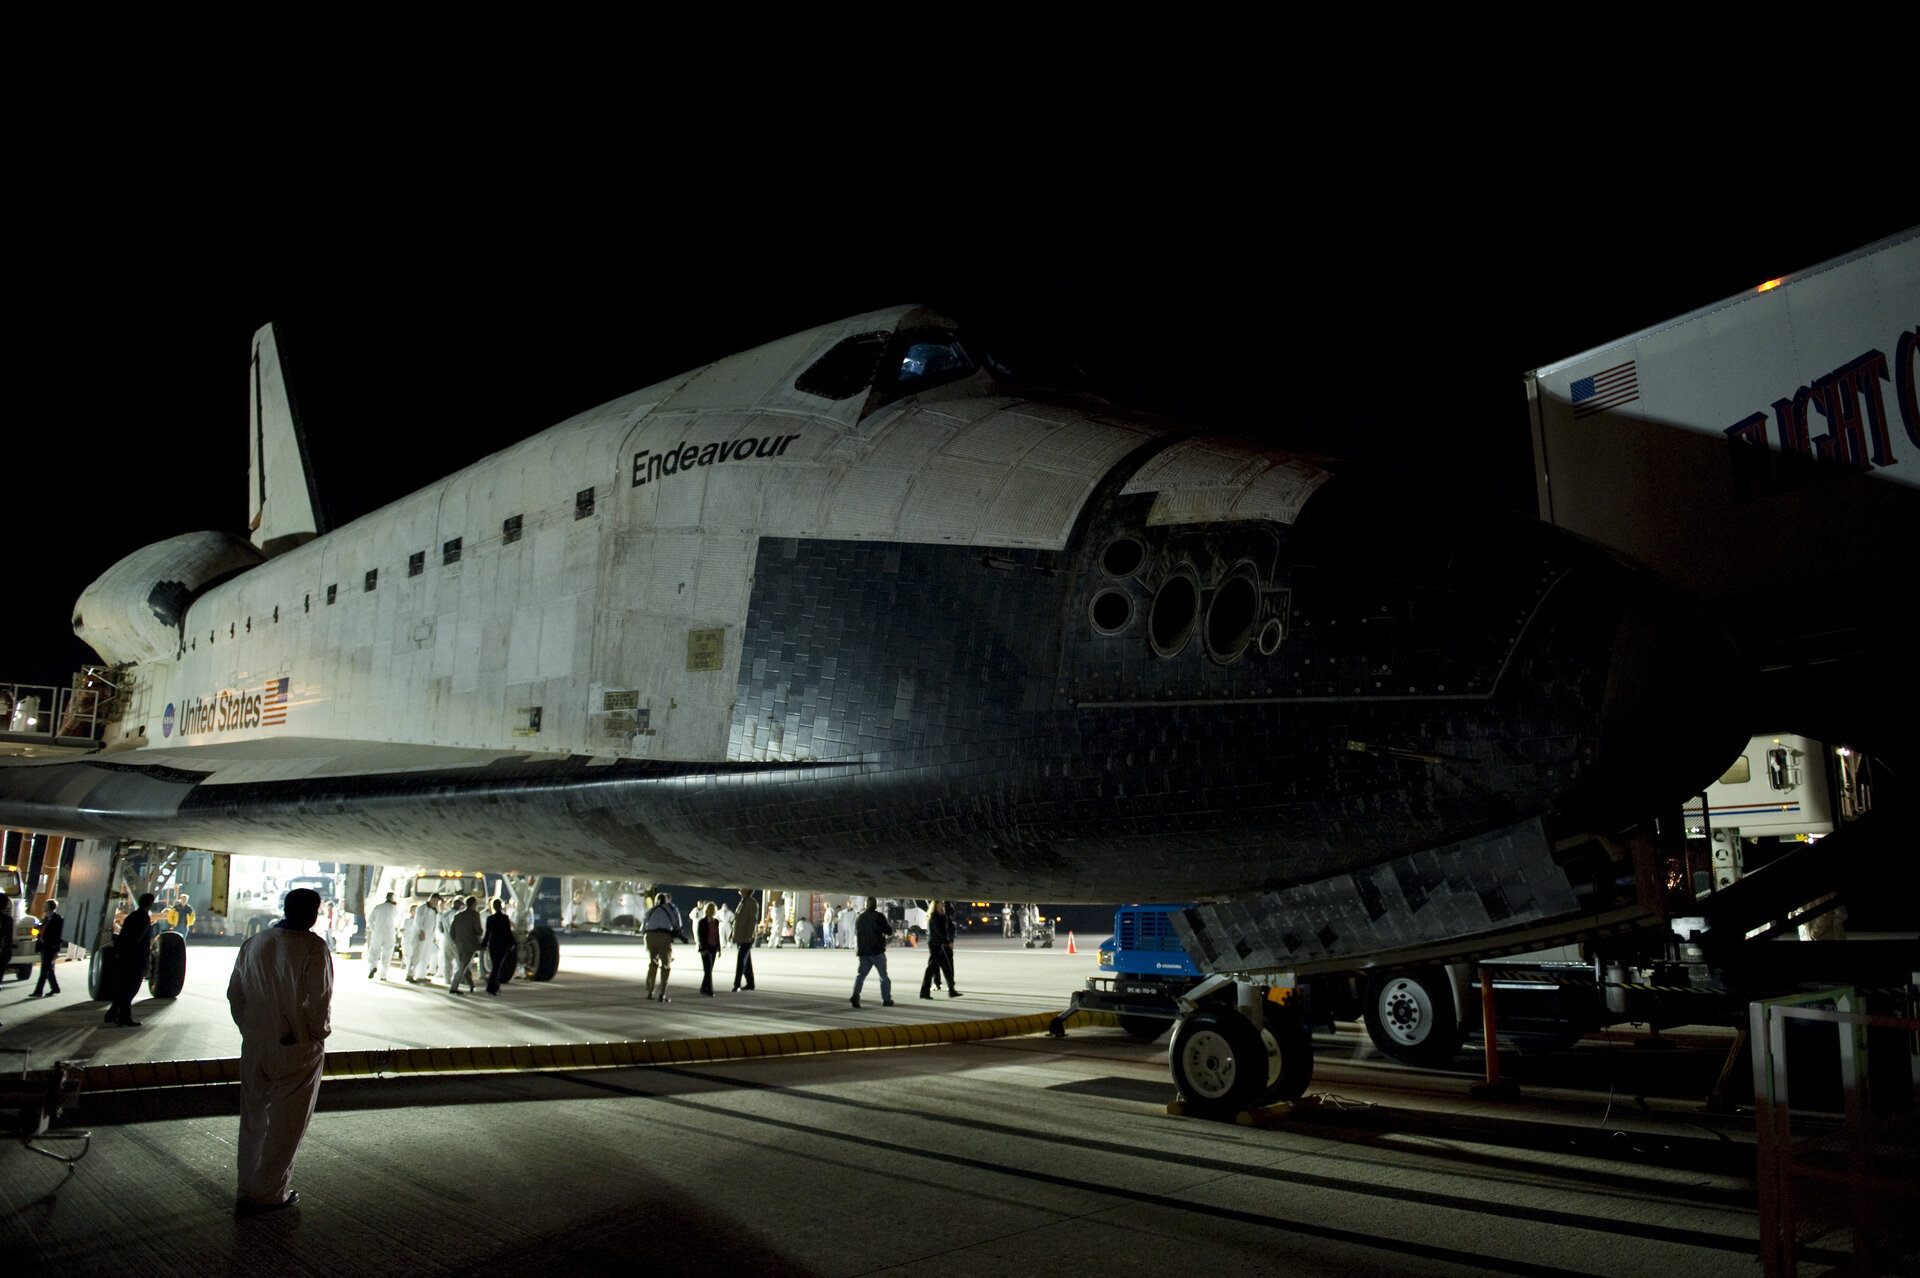 Endeavour shortly after landing at NASA' s Kennedy Space Center